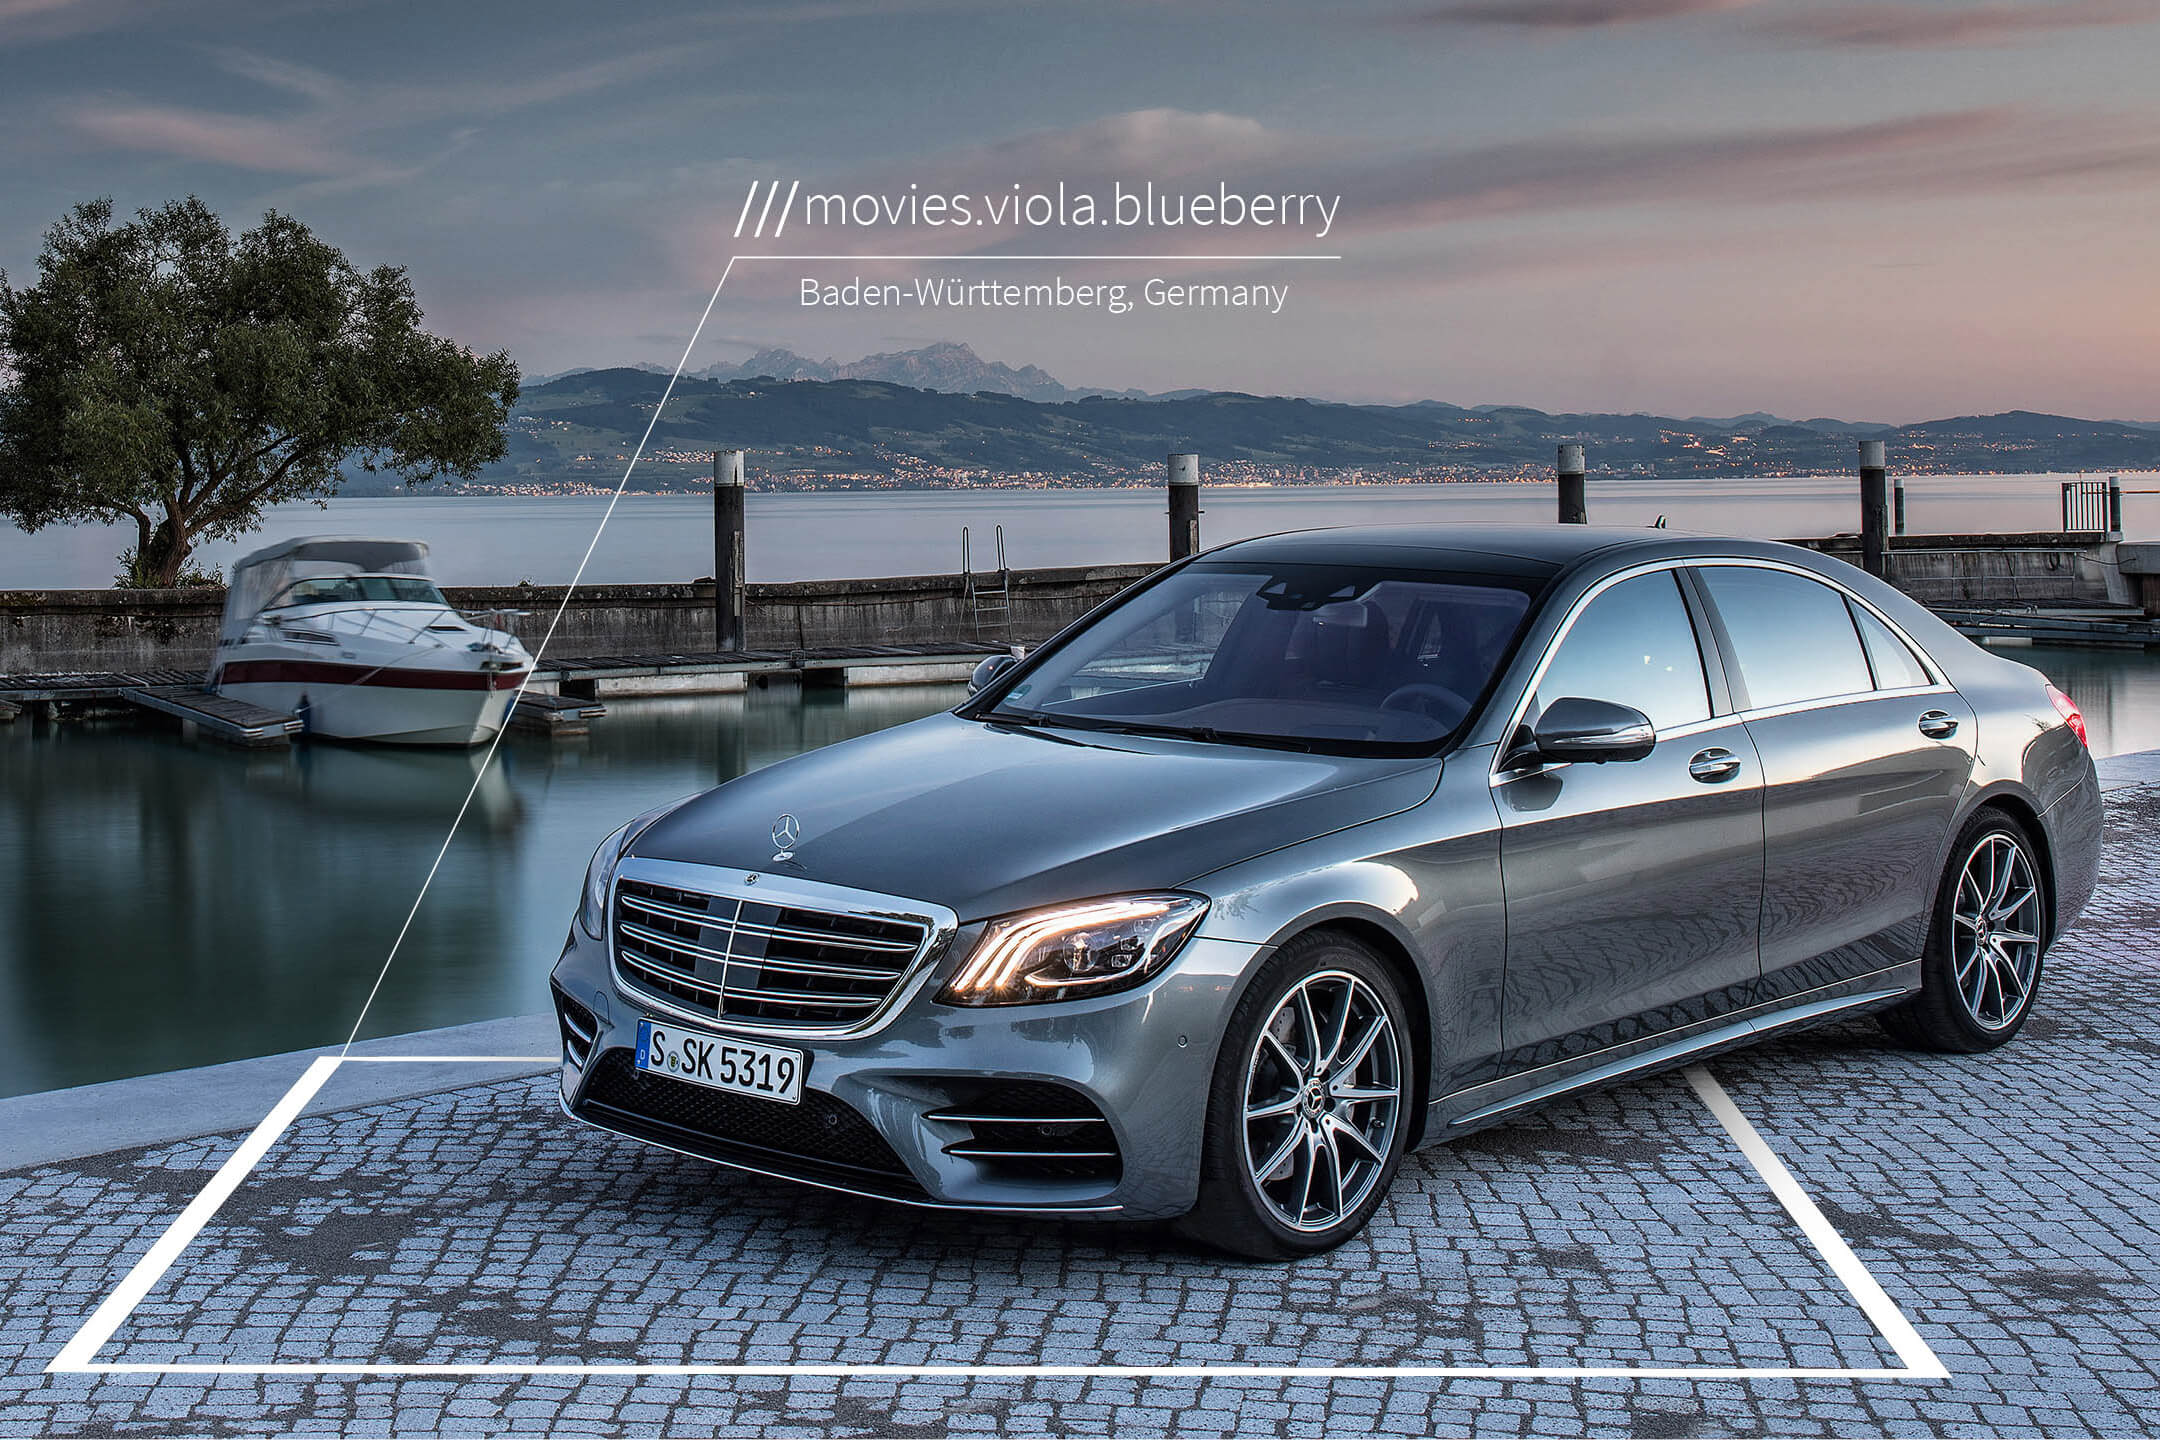 All you need to know about Mercedes-Benz GPS voice navigation using